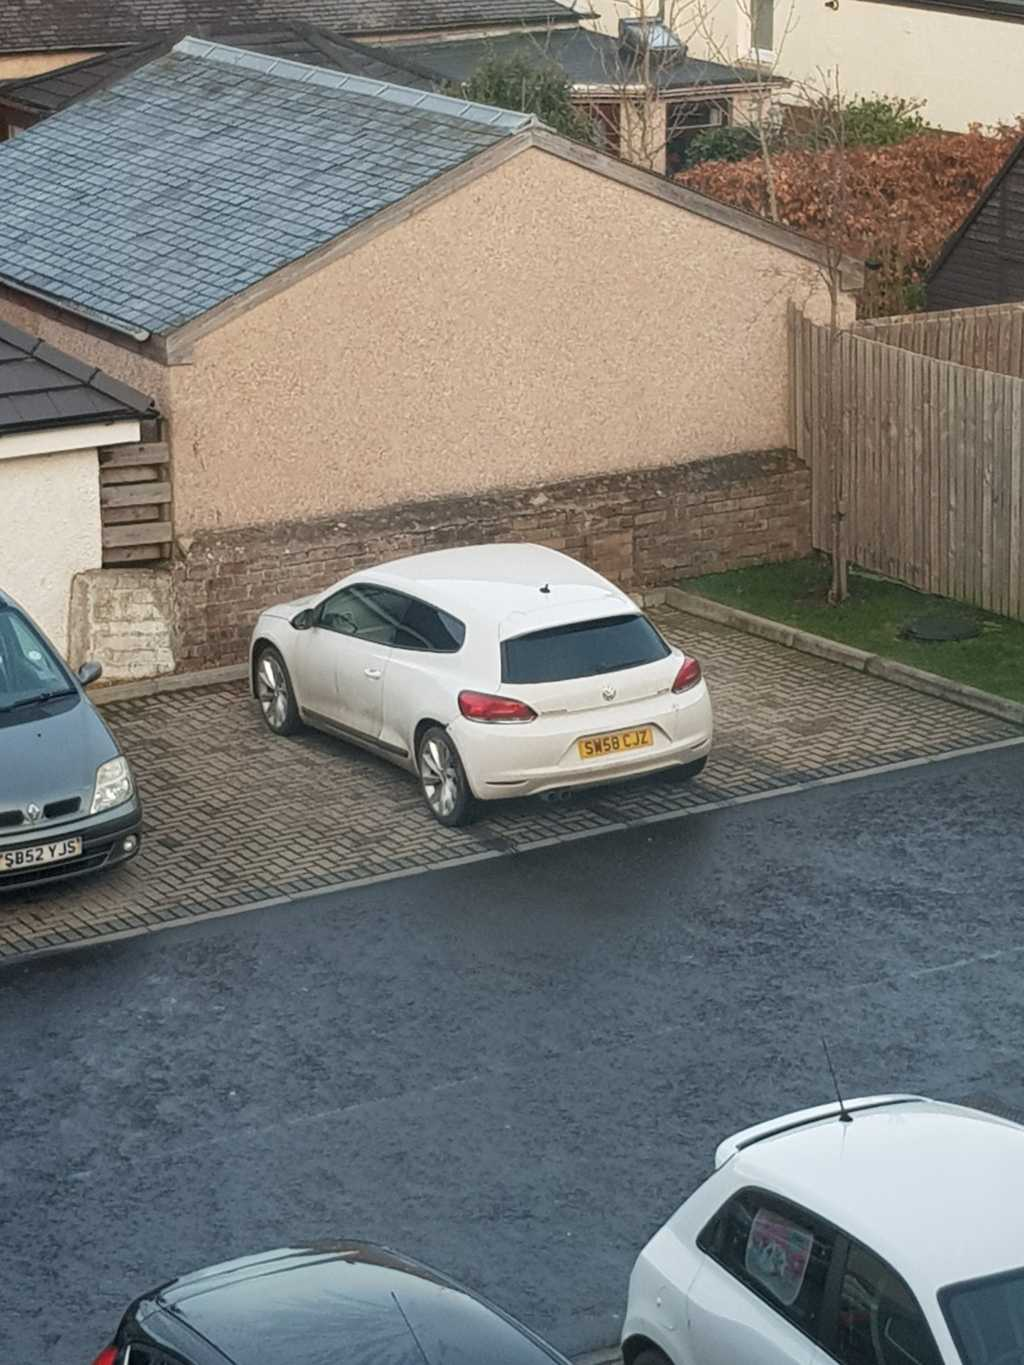 SW58 CJZ displaying Selfish Parking